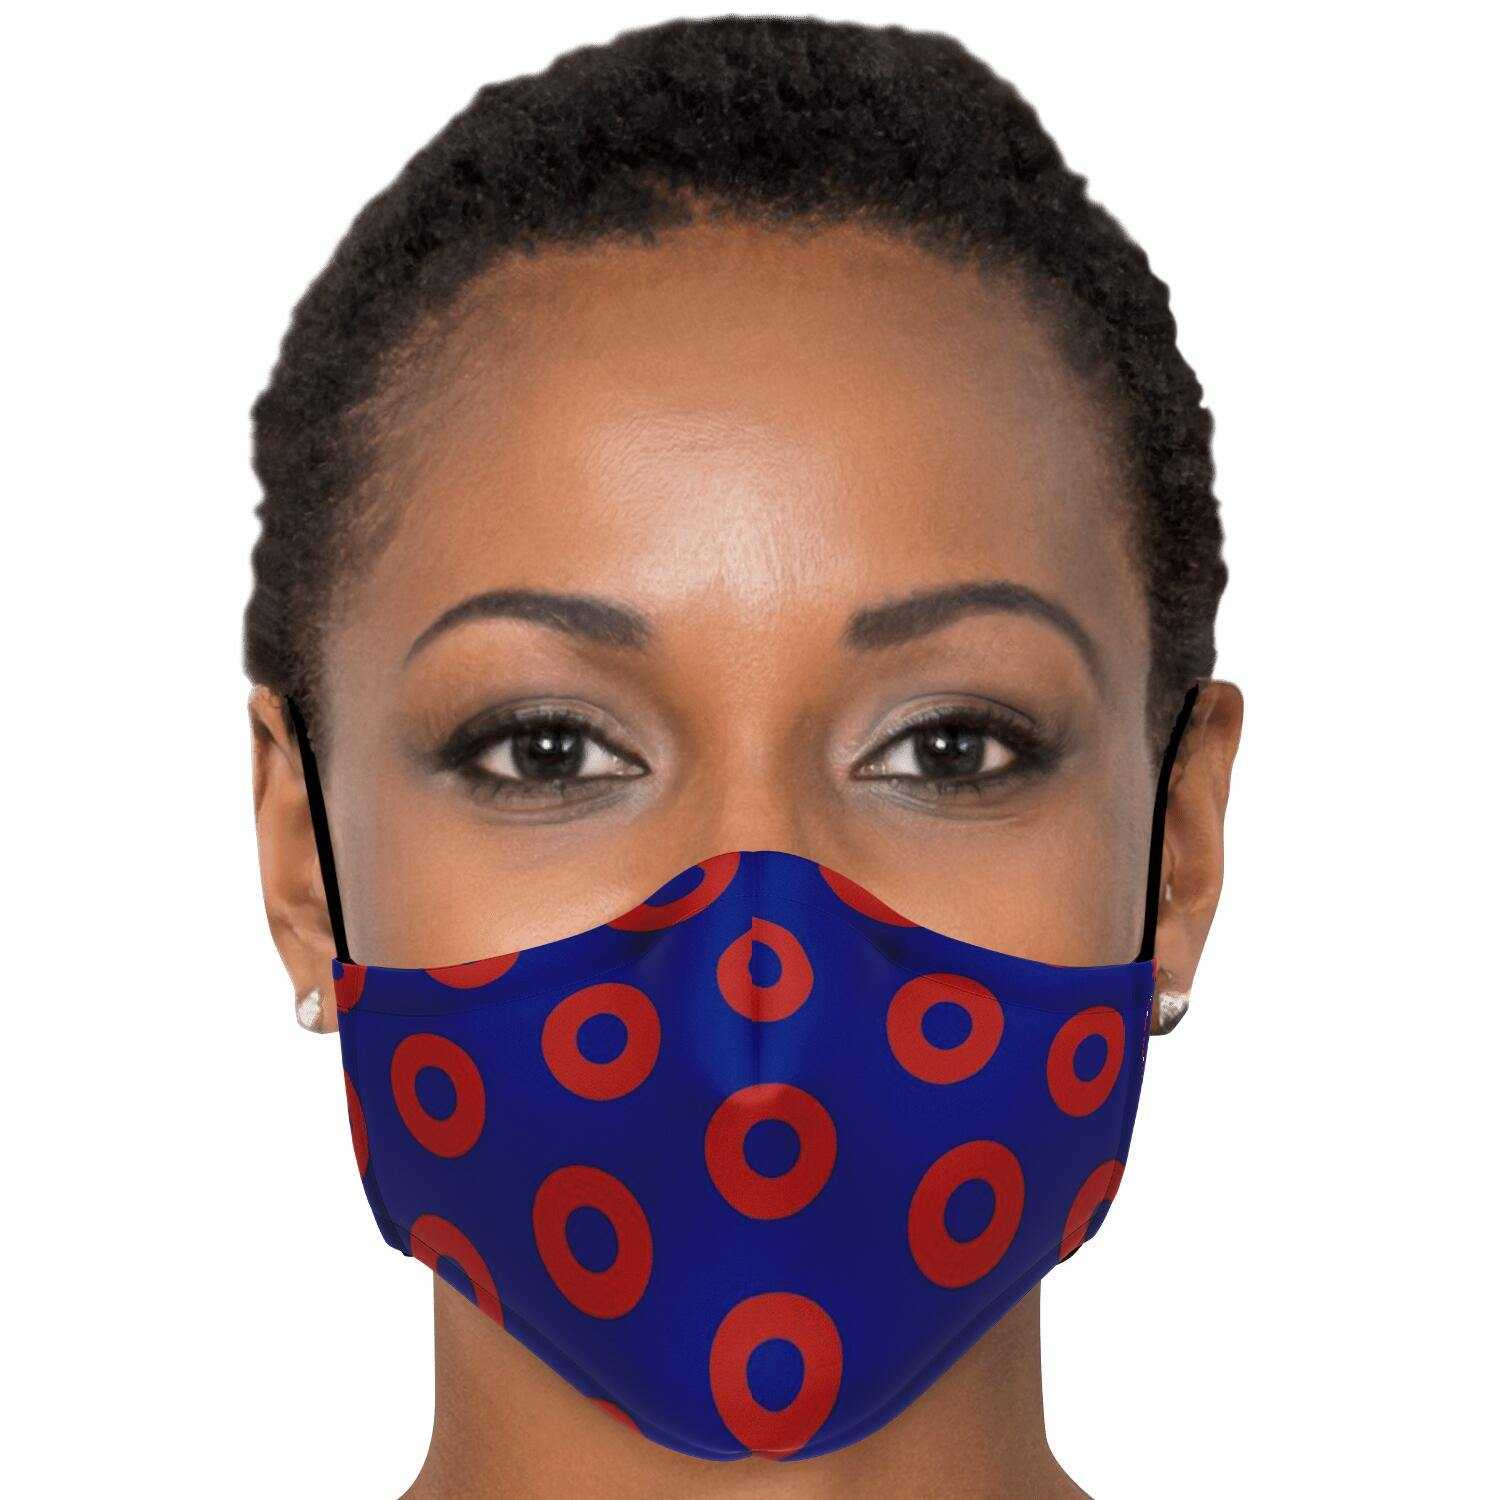 Phish Donut FACE MASK with 2pcs PM 2.5 carbon filters